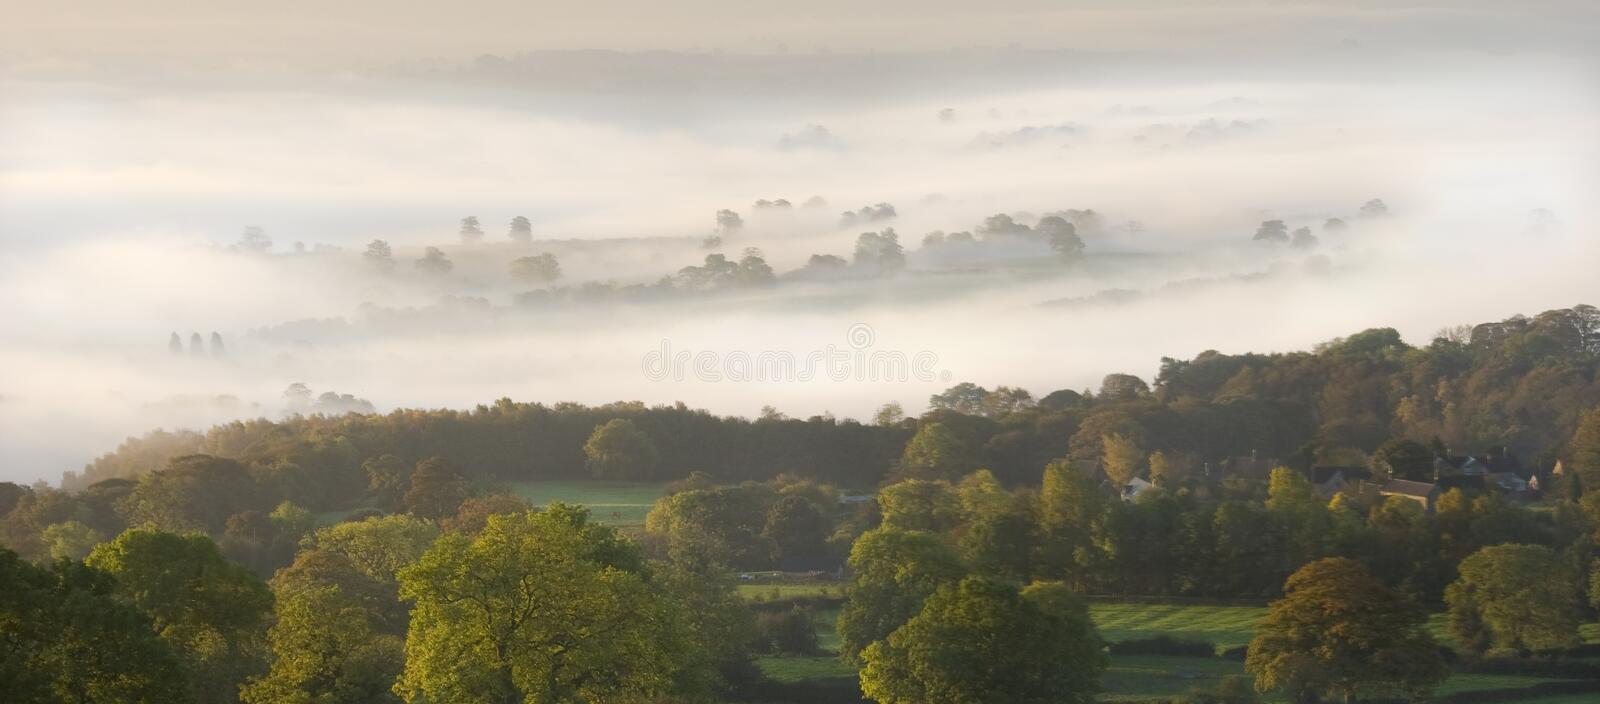 Early Mist royalty free stock photography